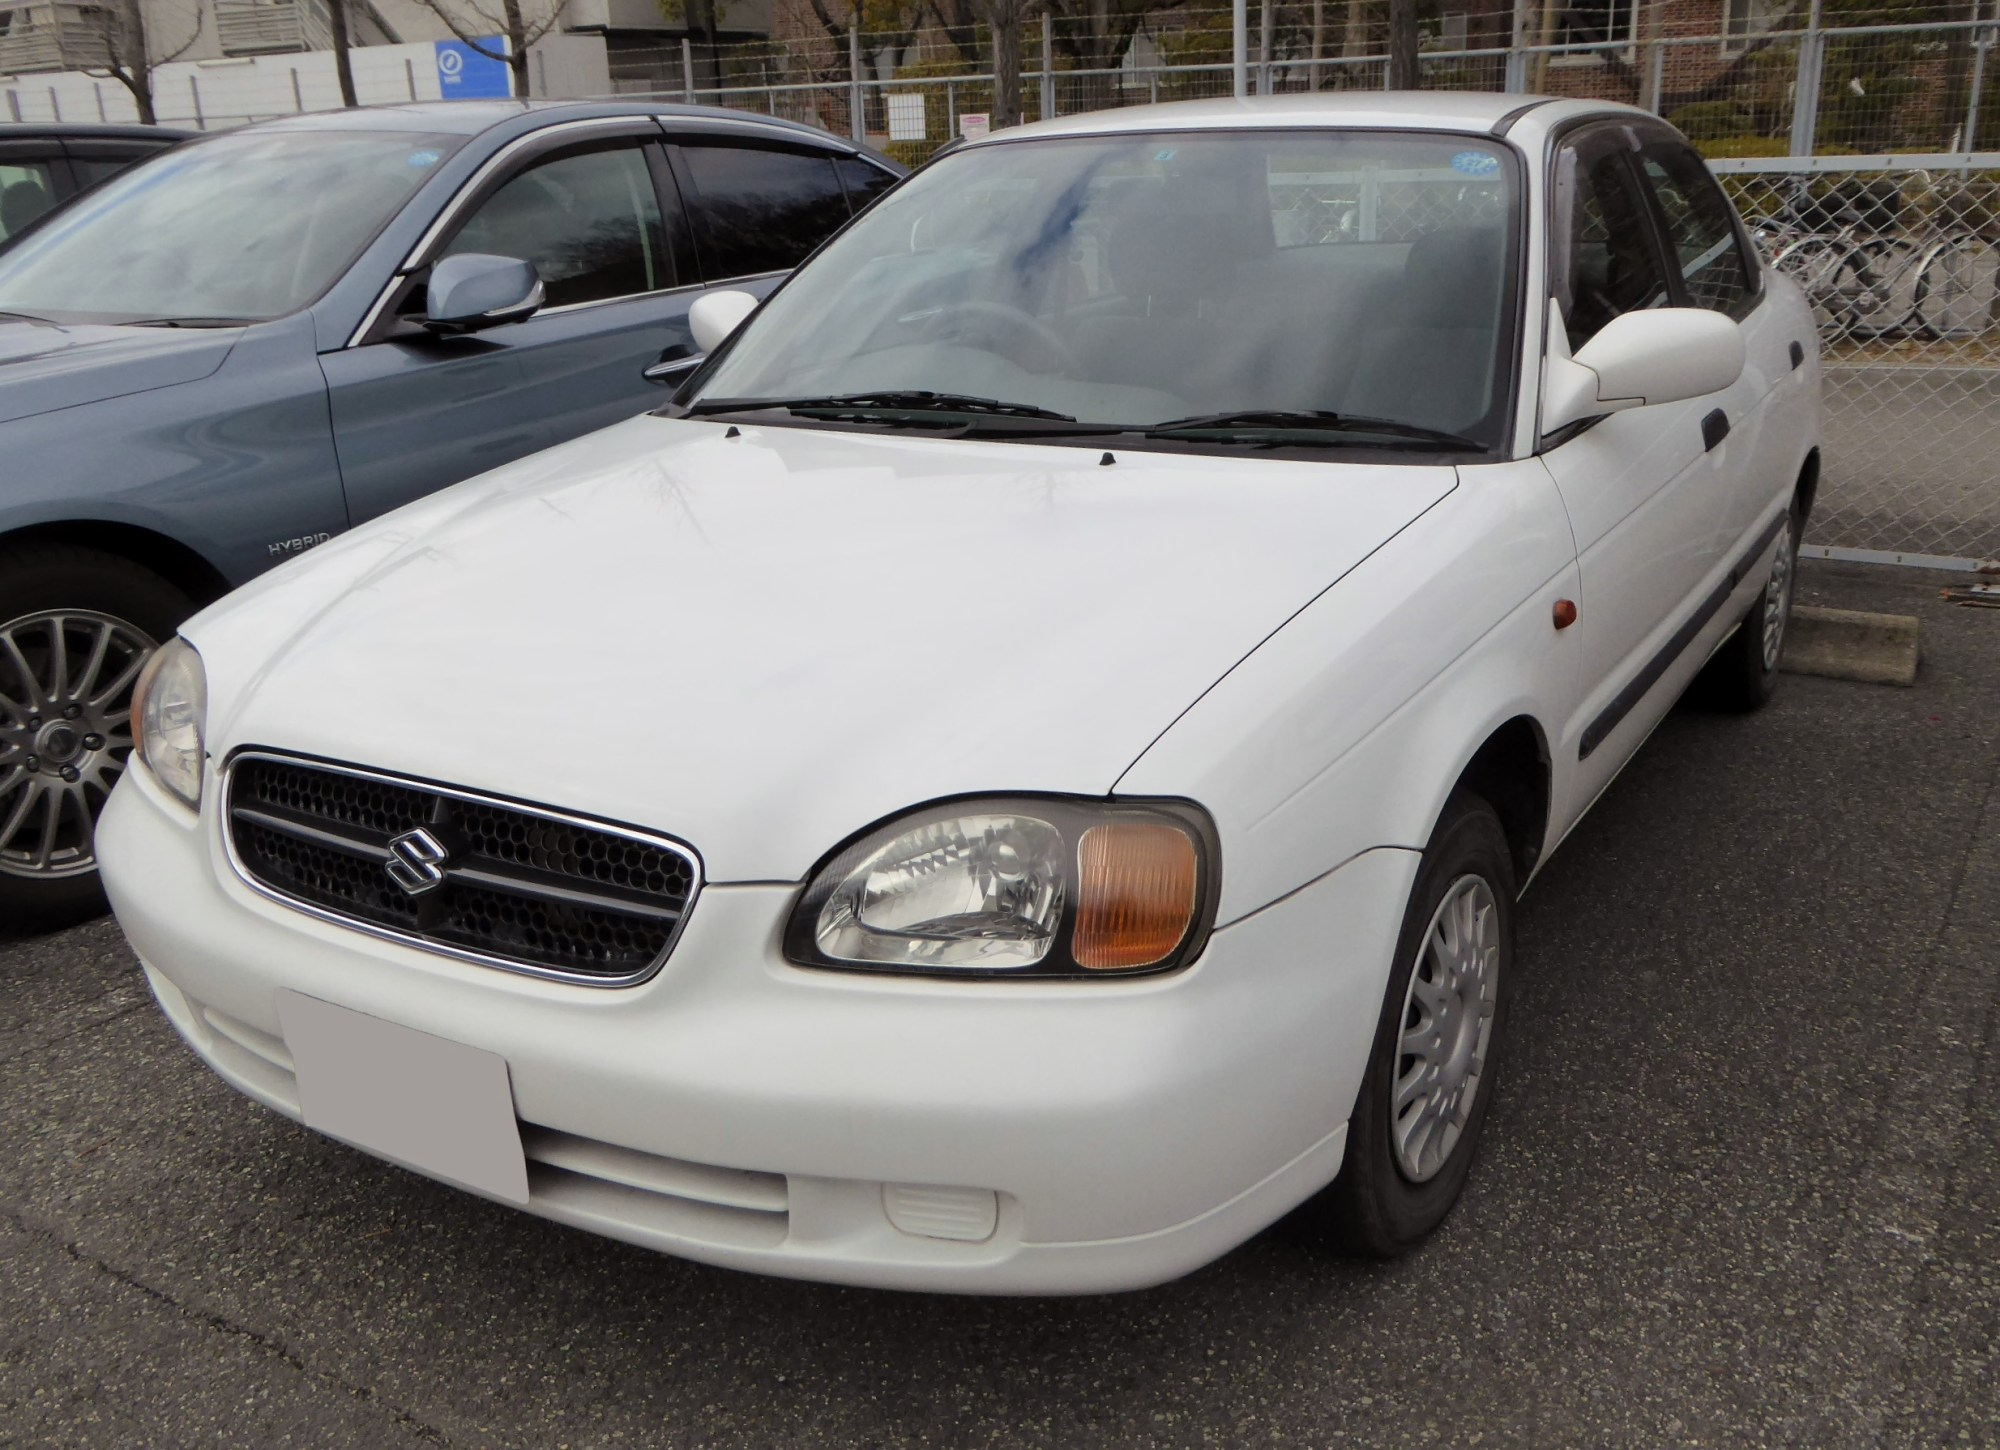 hight resolution of 1998 2001 suzuki cultus sedan japan